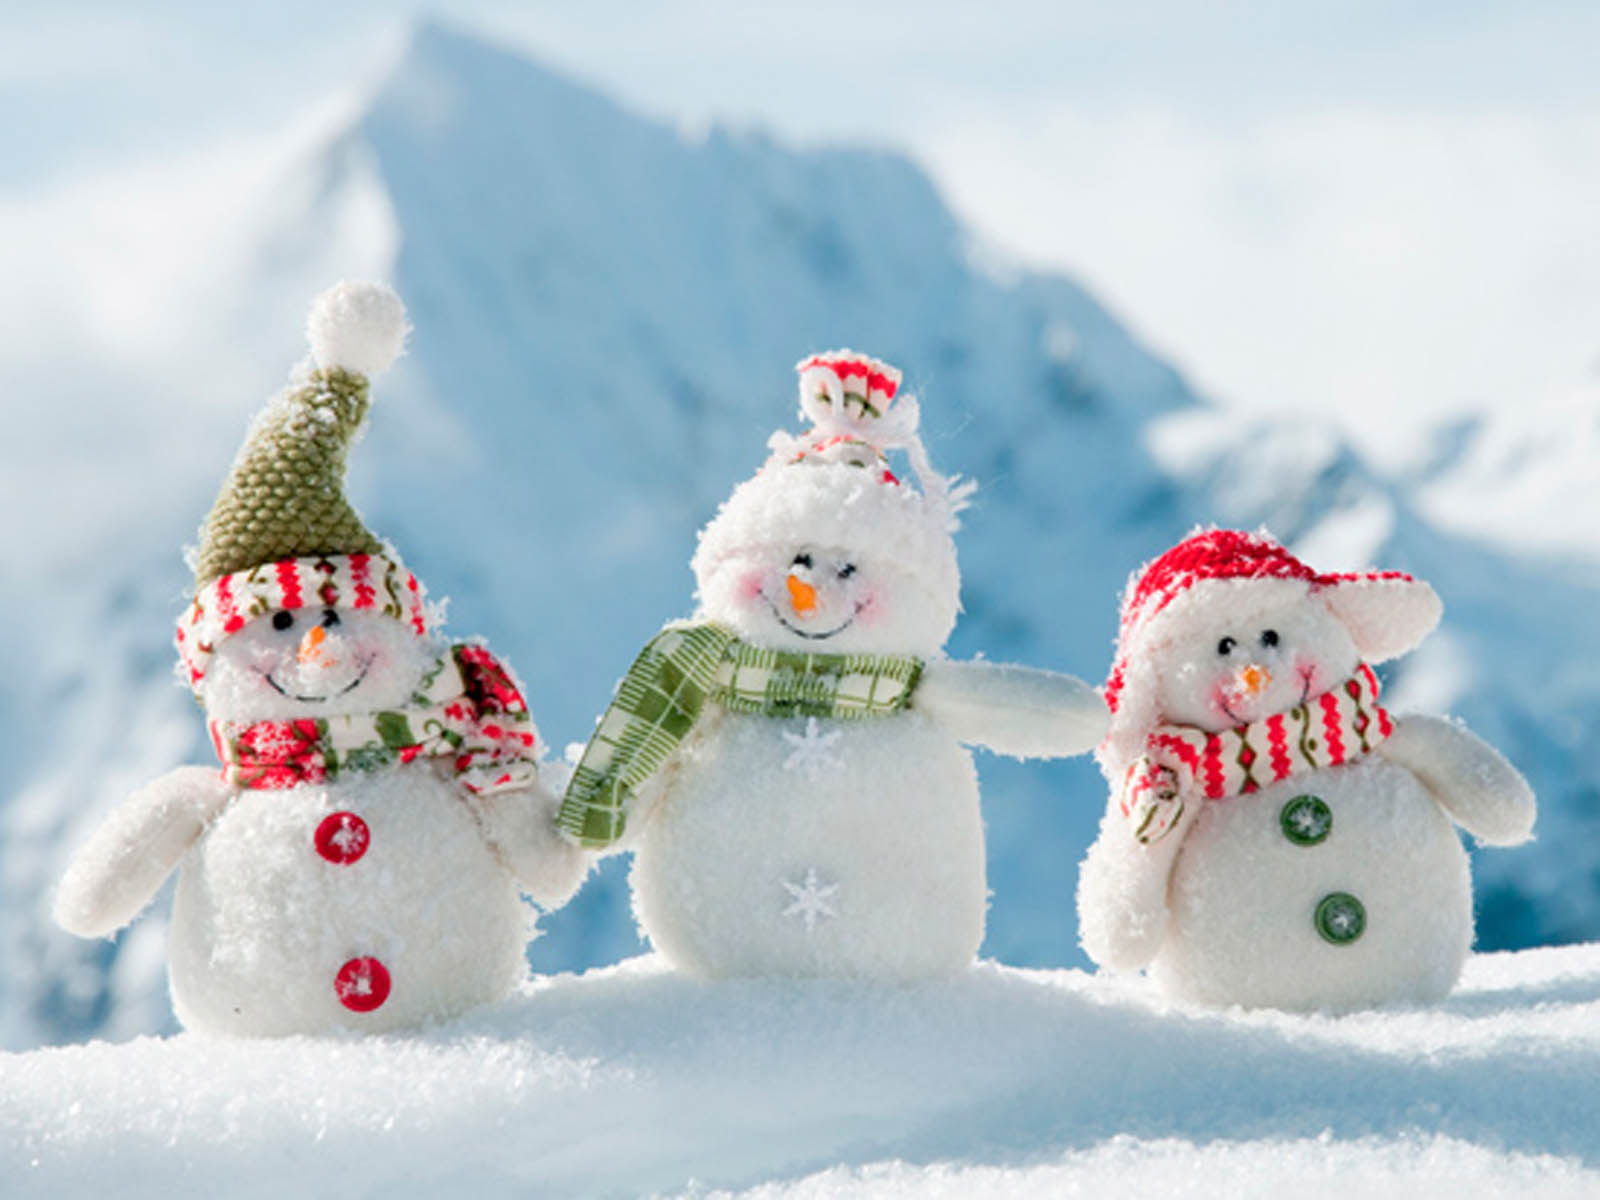 Wallpapers: Snowman Desktop Wallpapers And Backgrounds